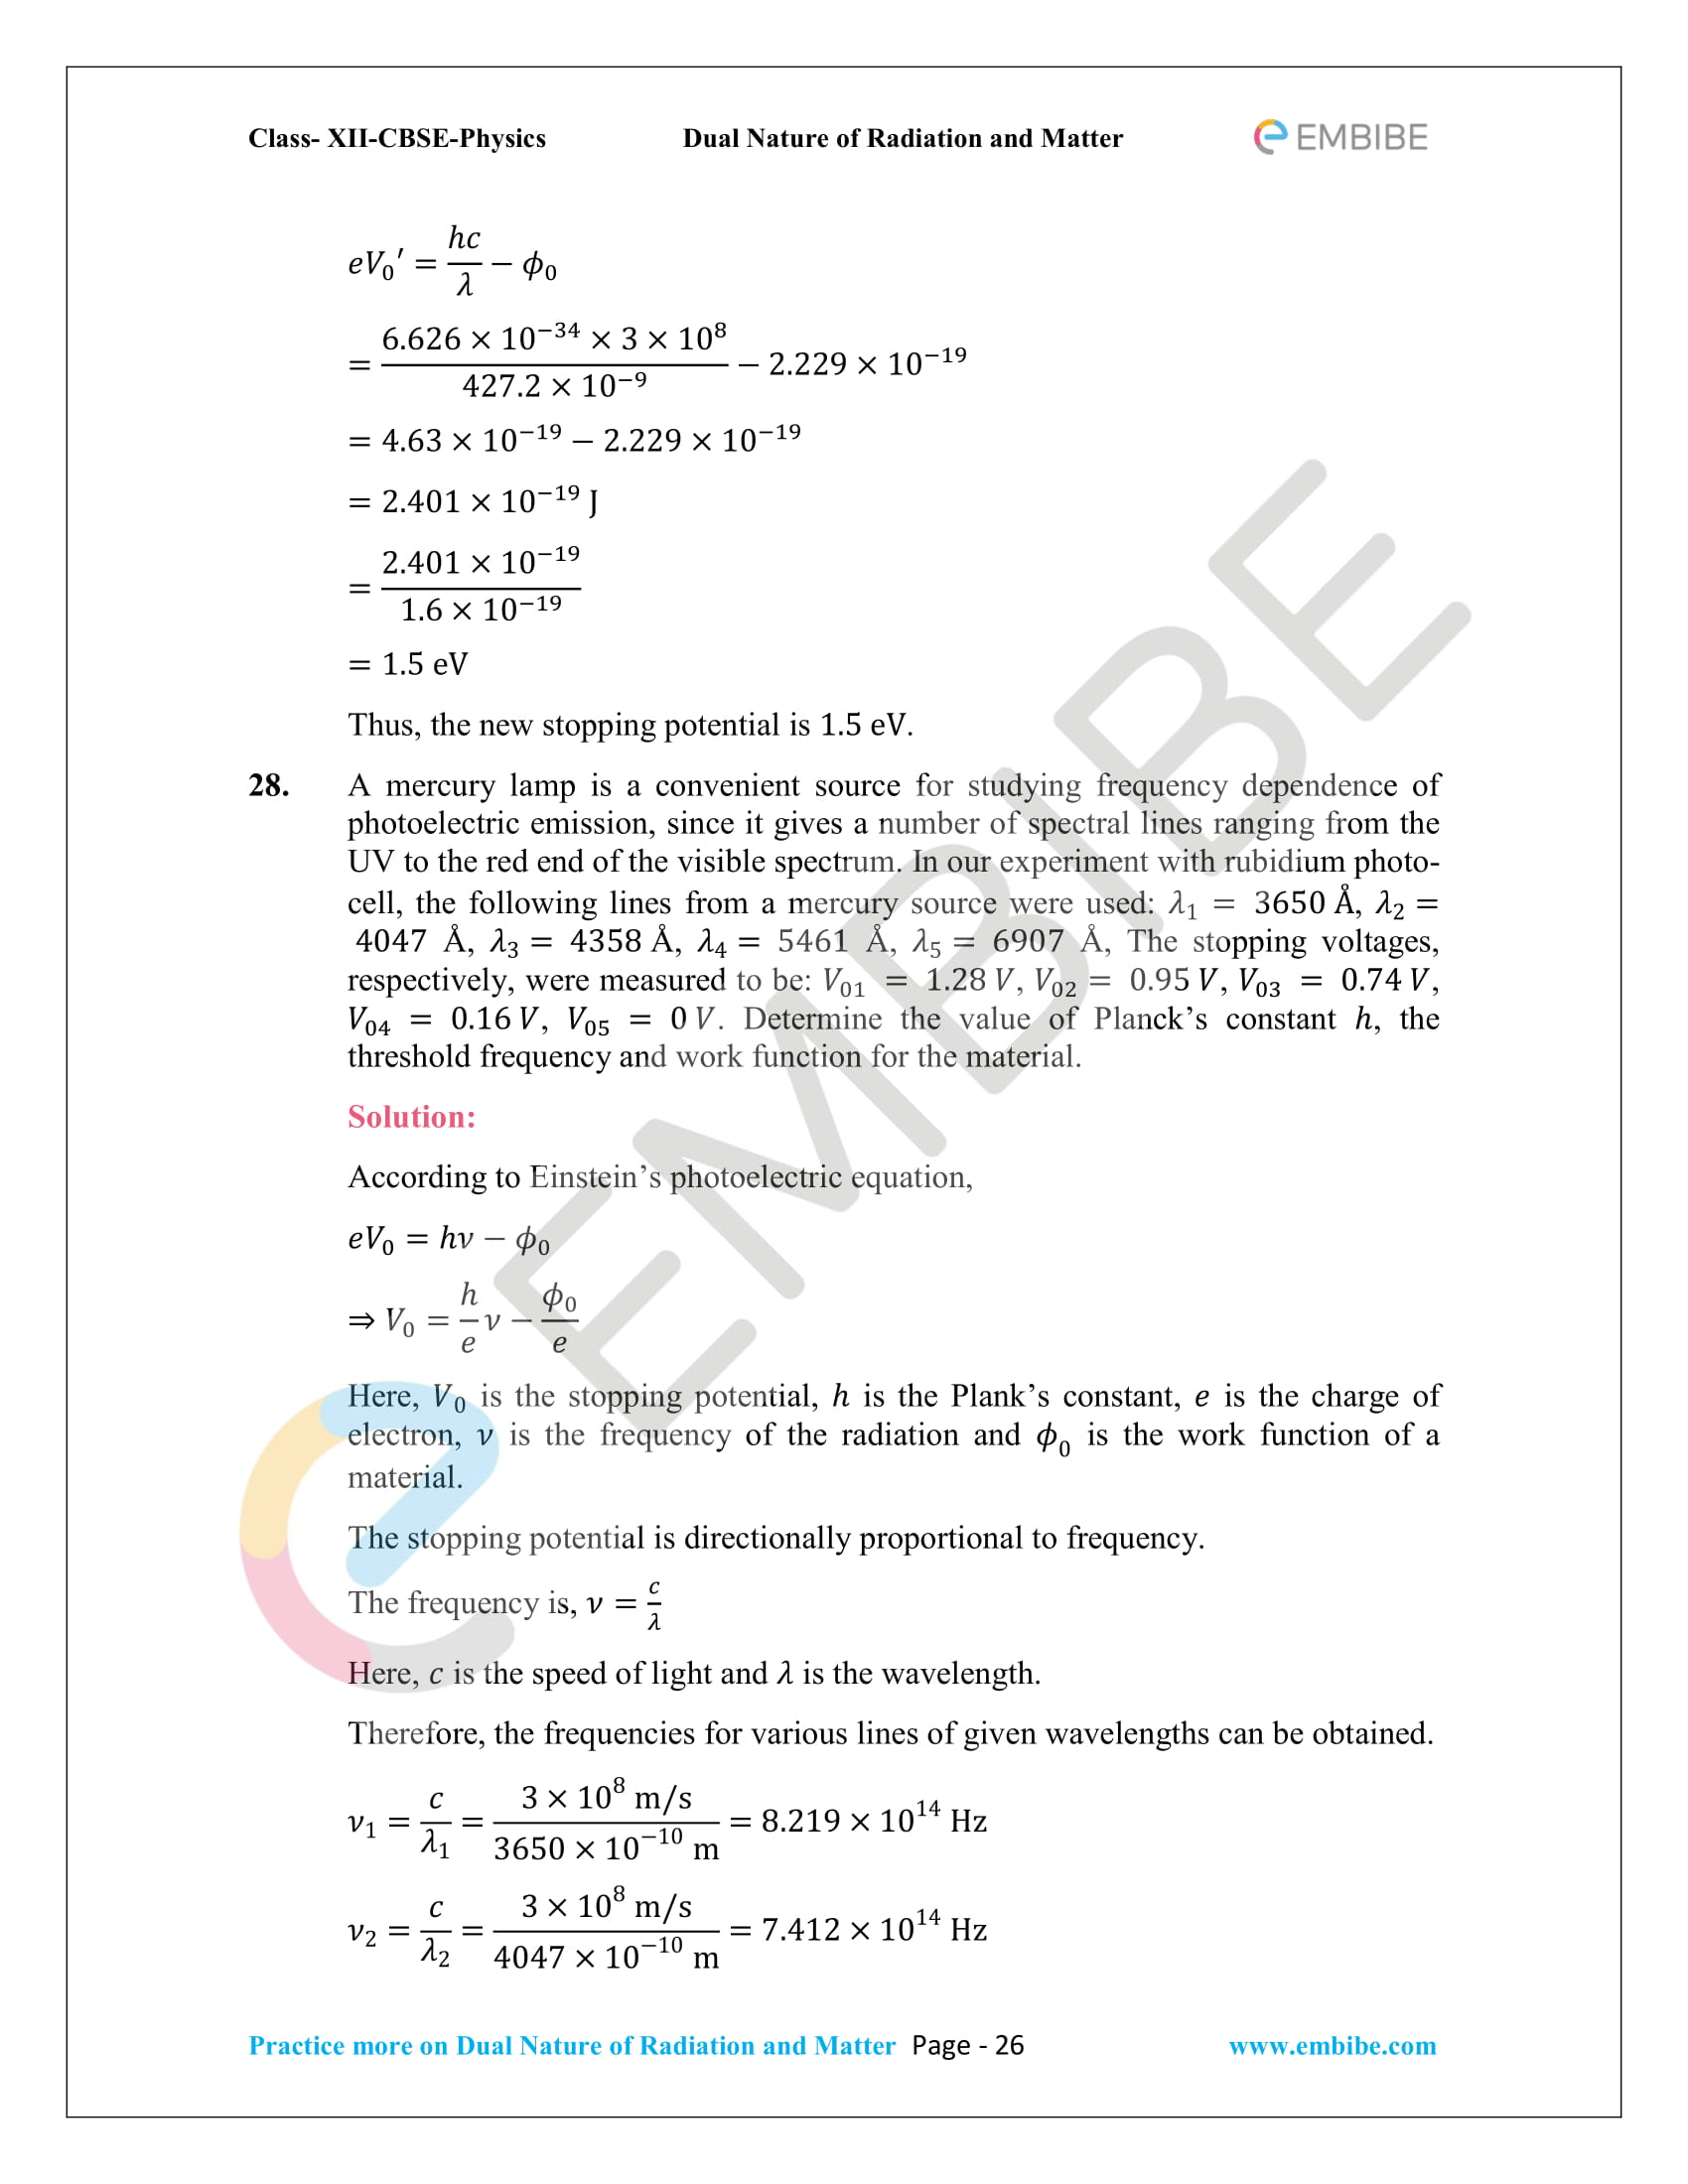 NCERT_Grade 12_Physics_Ch_11_Dual Nature of Radiation and Matter-26